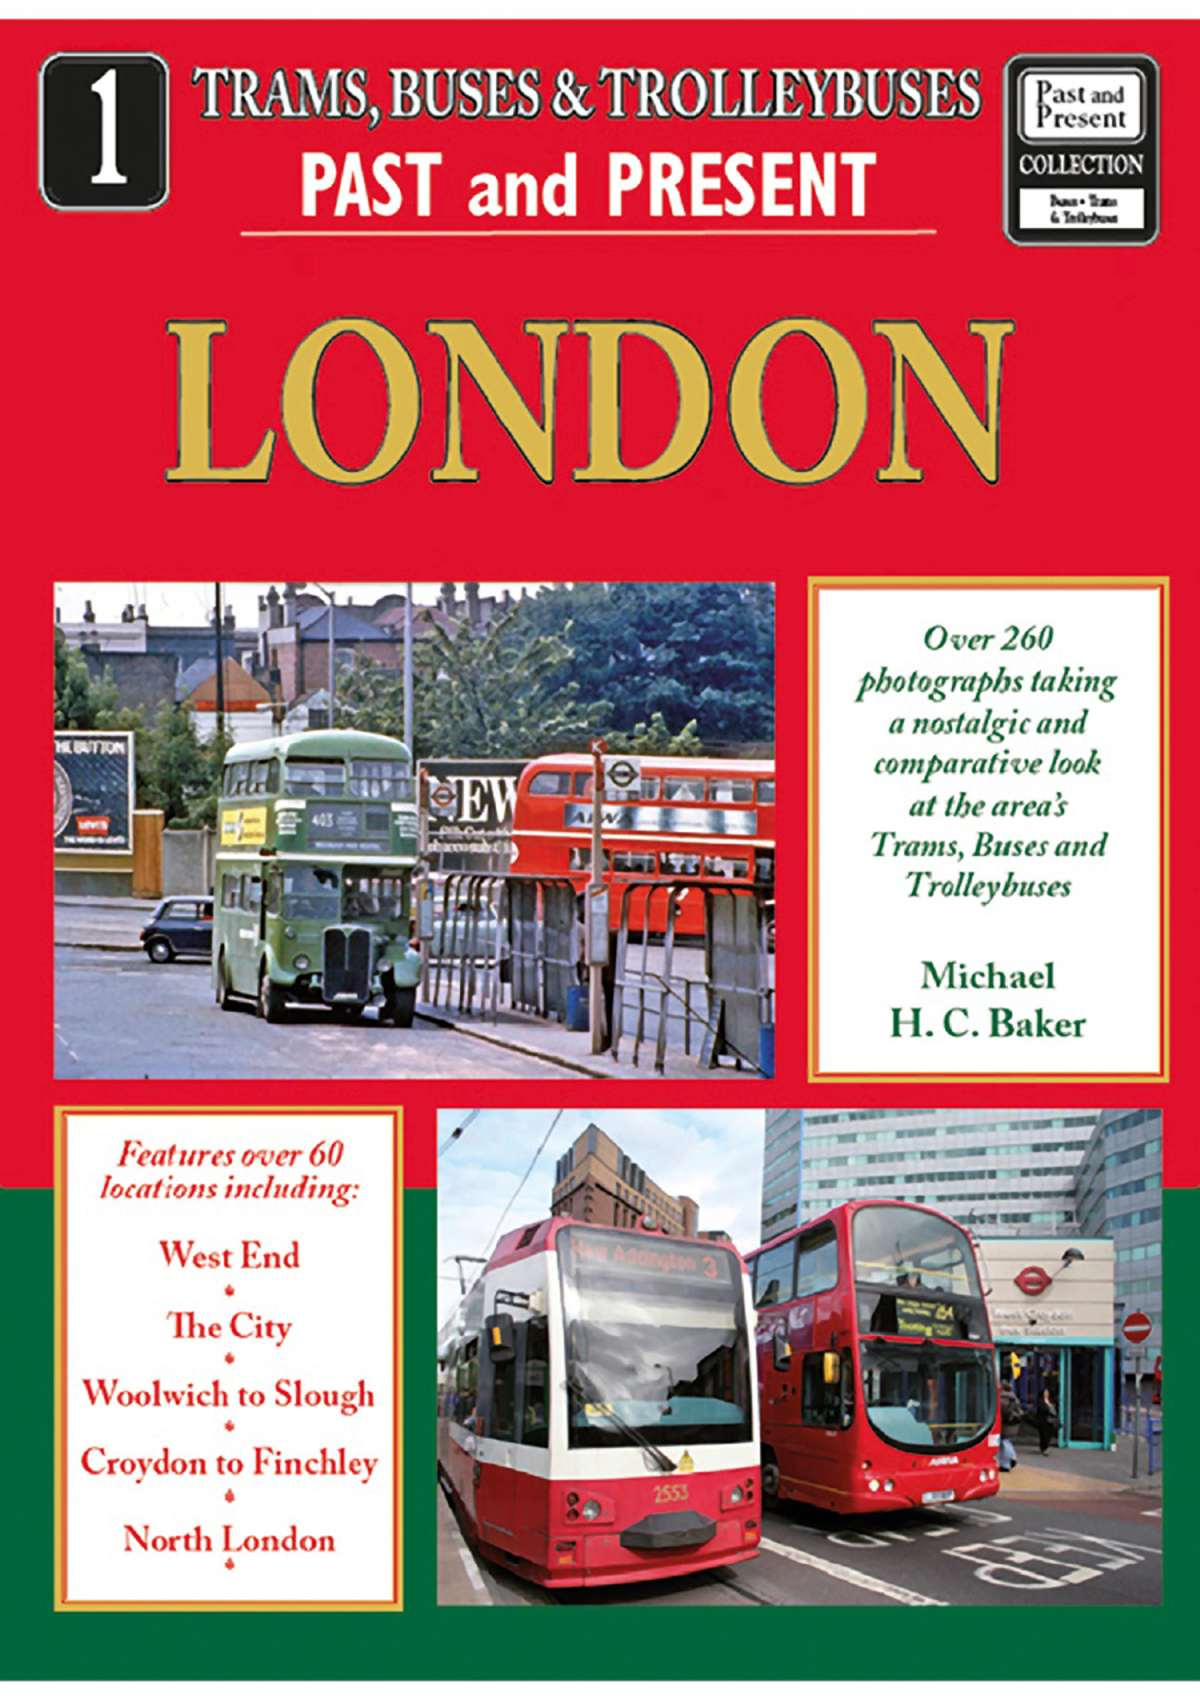 2666 - Trams, Buses and Trolleybuses No 1: London